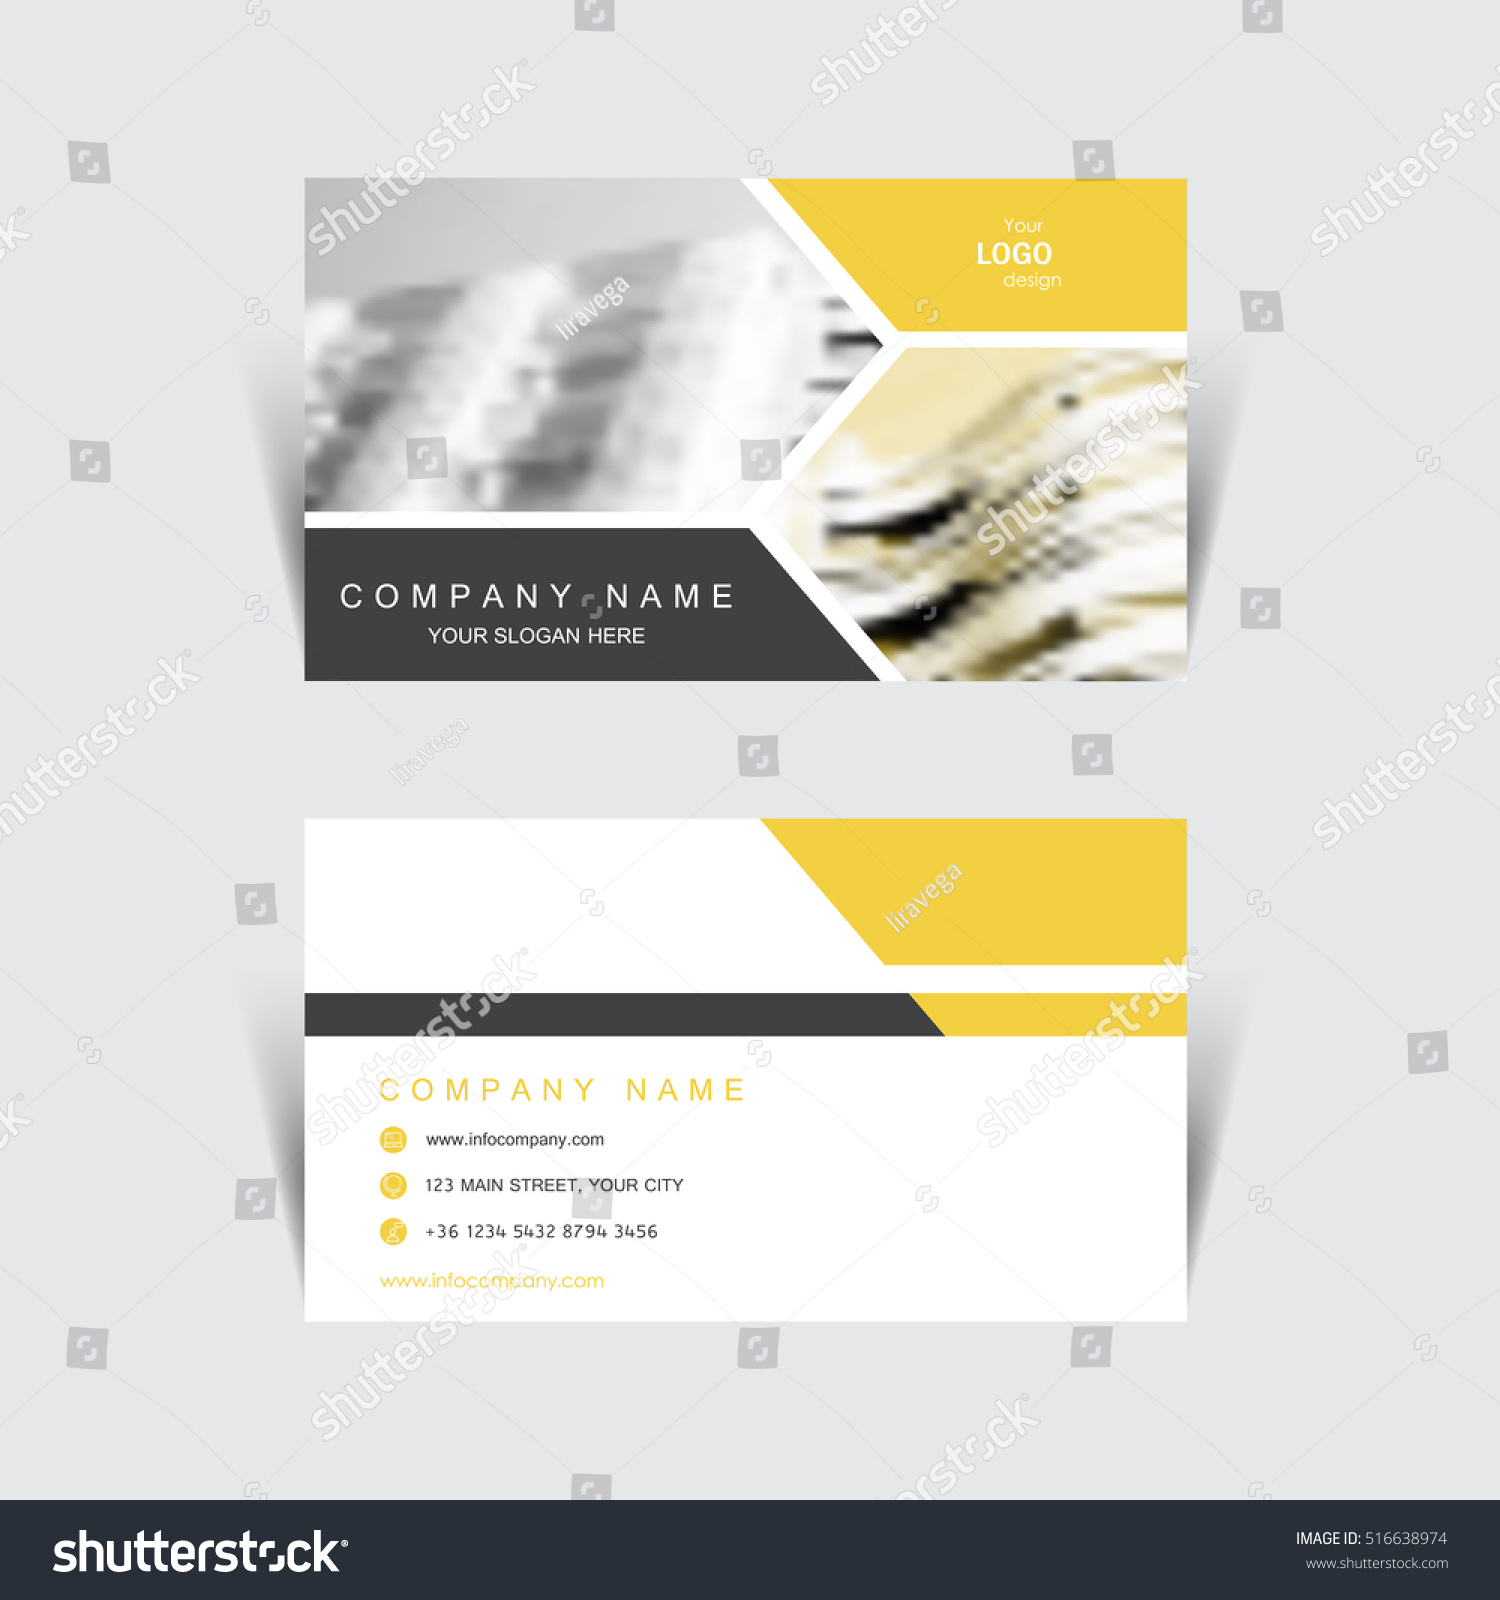 Business Card Print Template Design Vector Stock Vector 516638974 ...